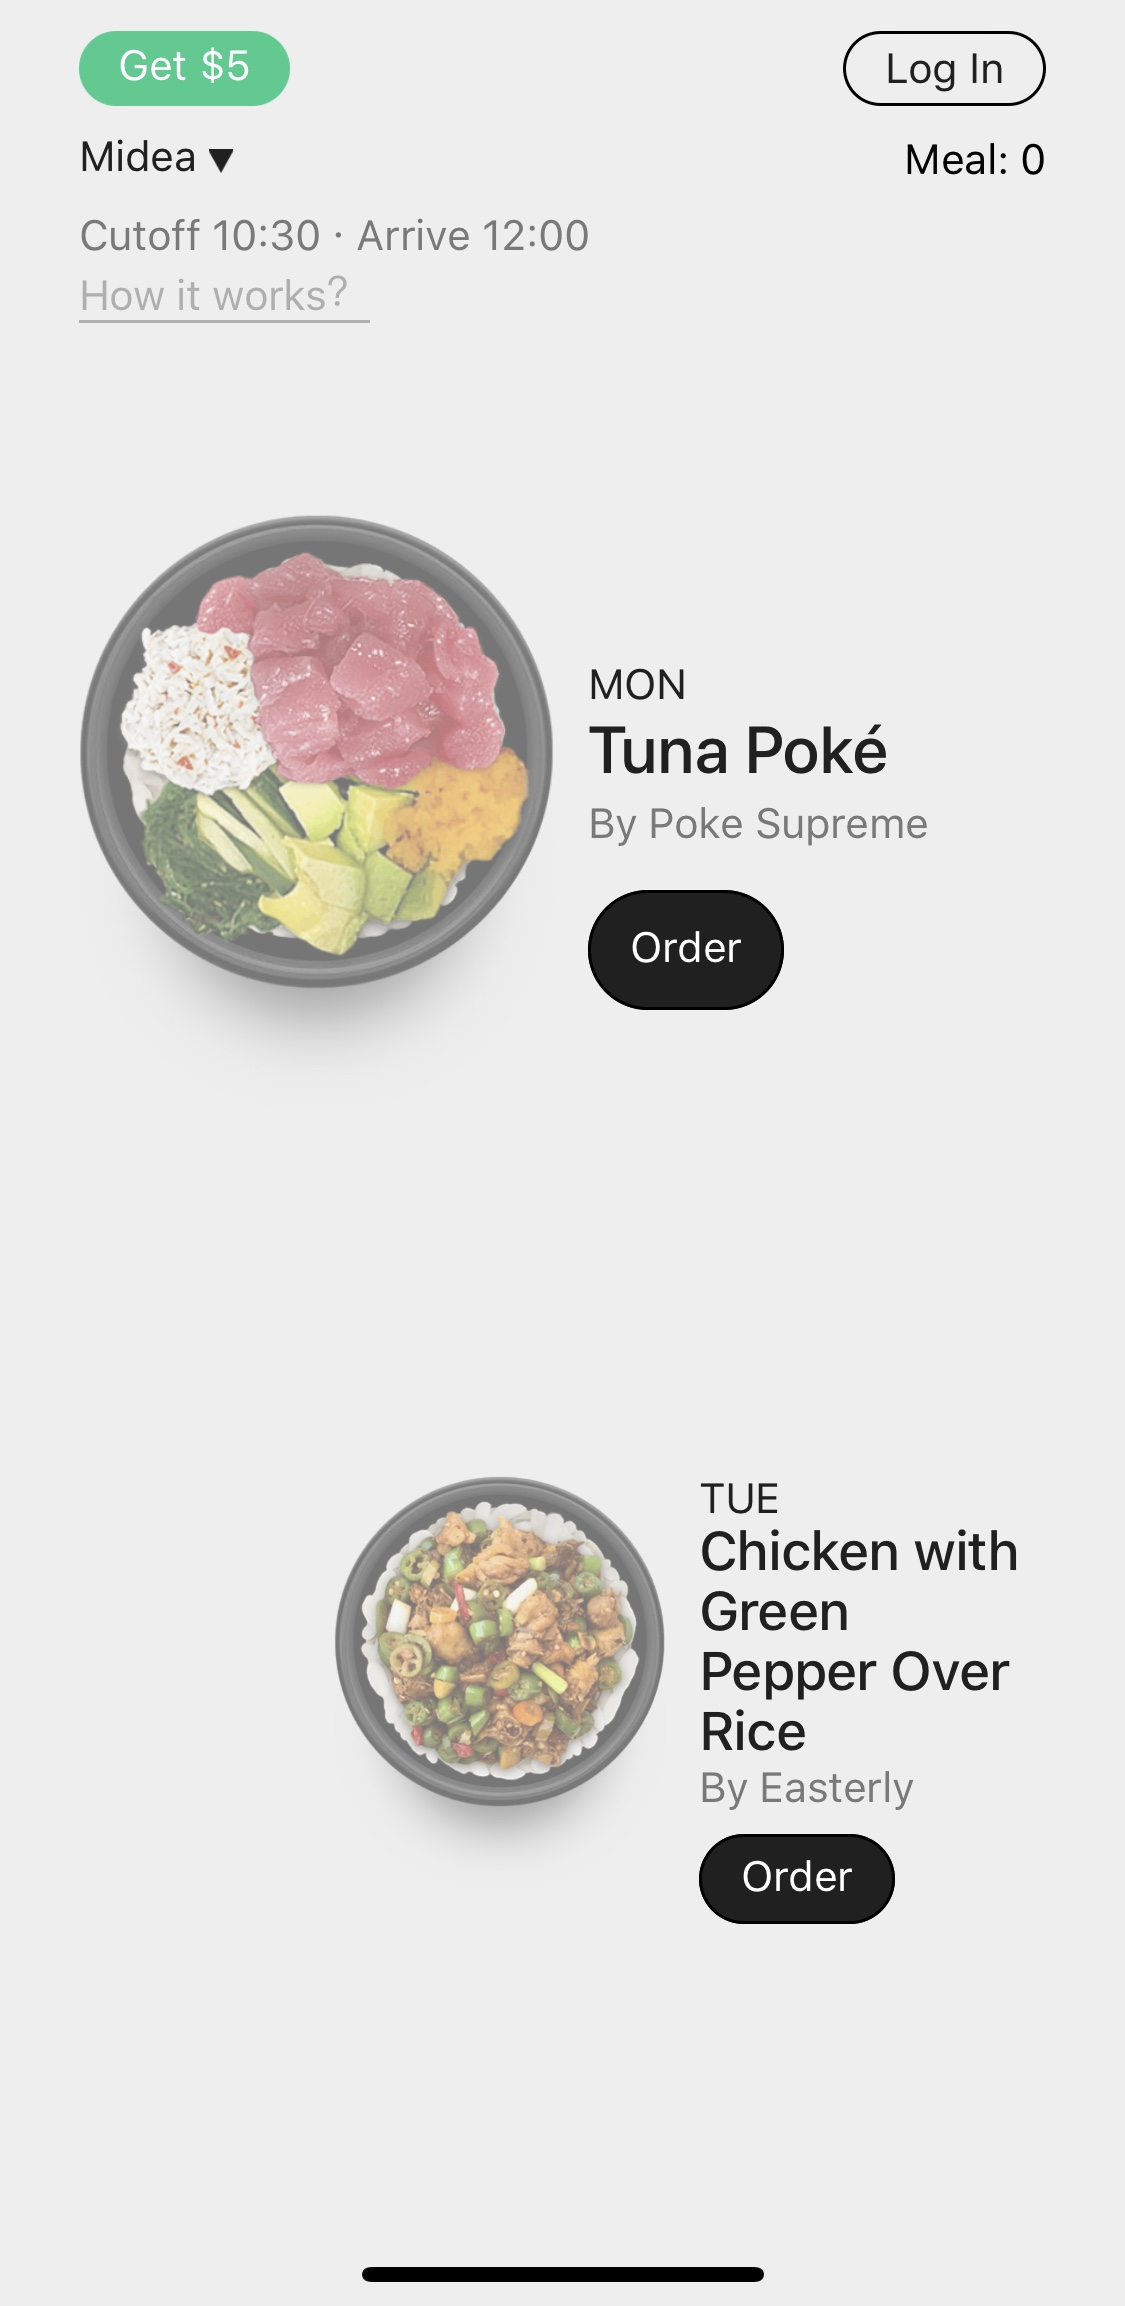 Touch Log in to input phone number.  Touch food image to explore the whole menu.